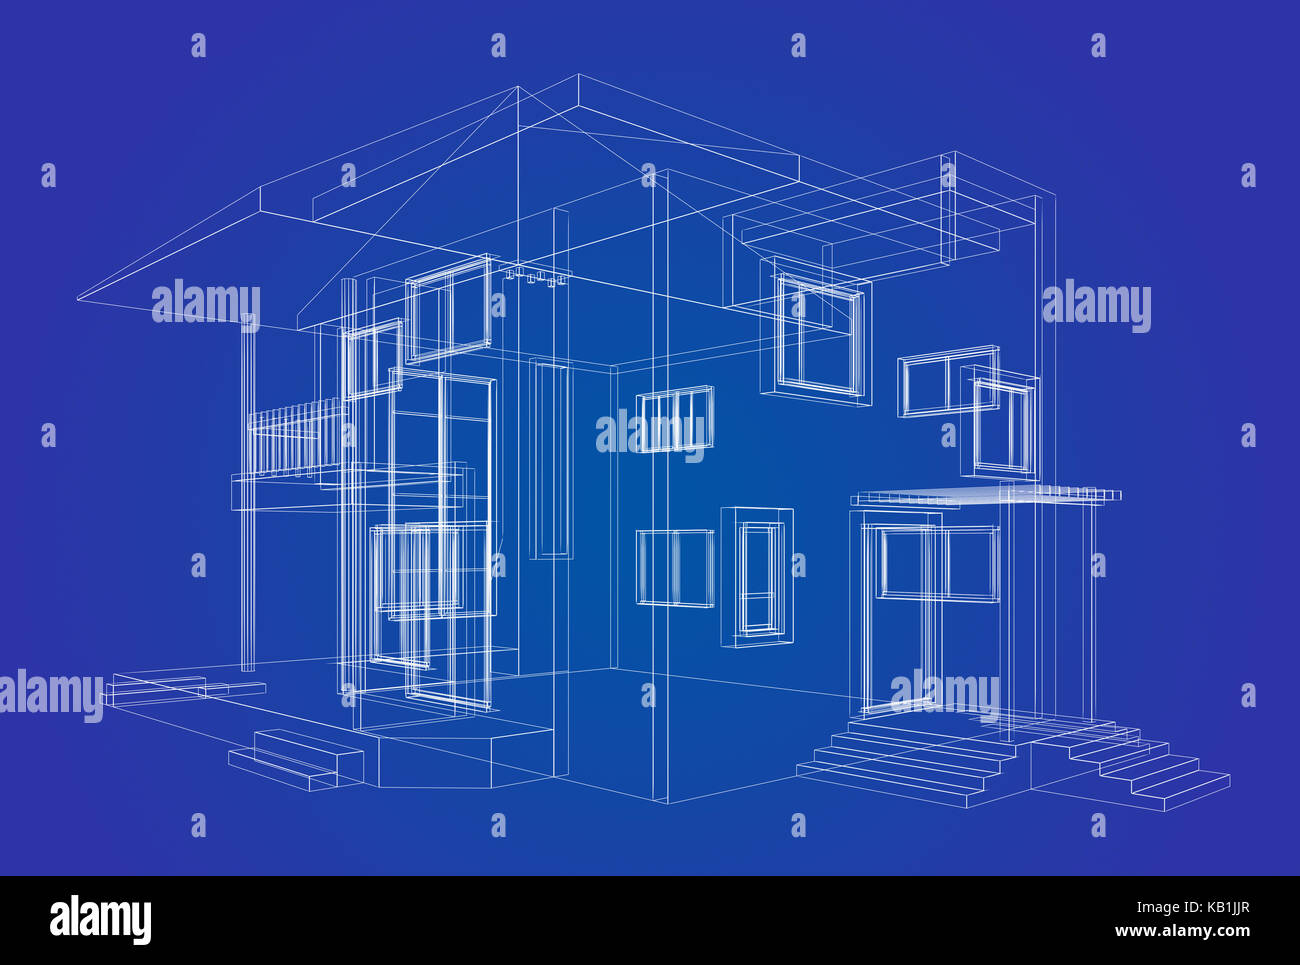 Design project building 3d render stock photos design project blueprint project building design and 3d rendering model my own stock image malvernweather Choice Image